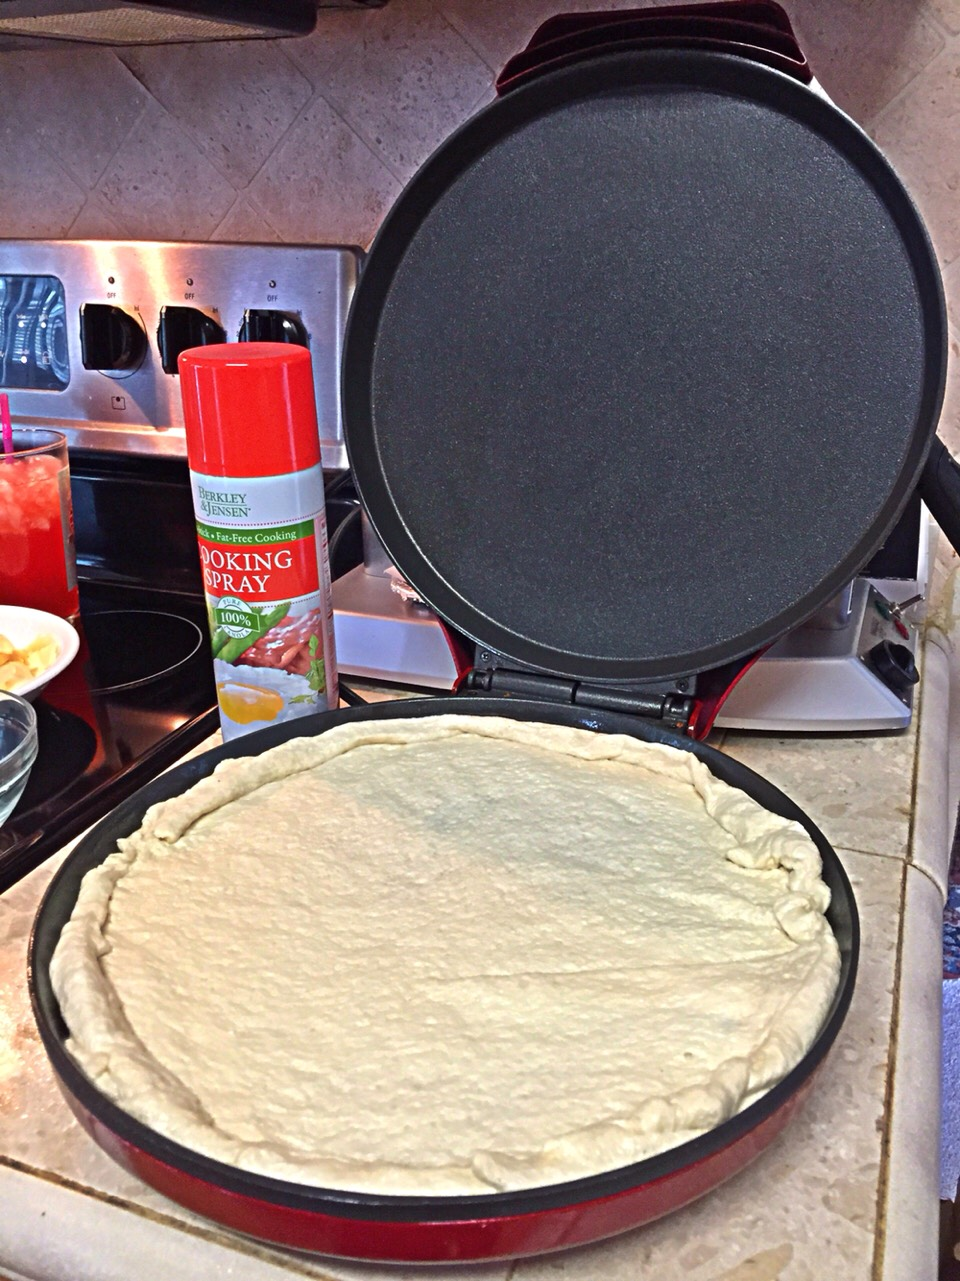 Par bake the pizza dough.